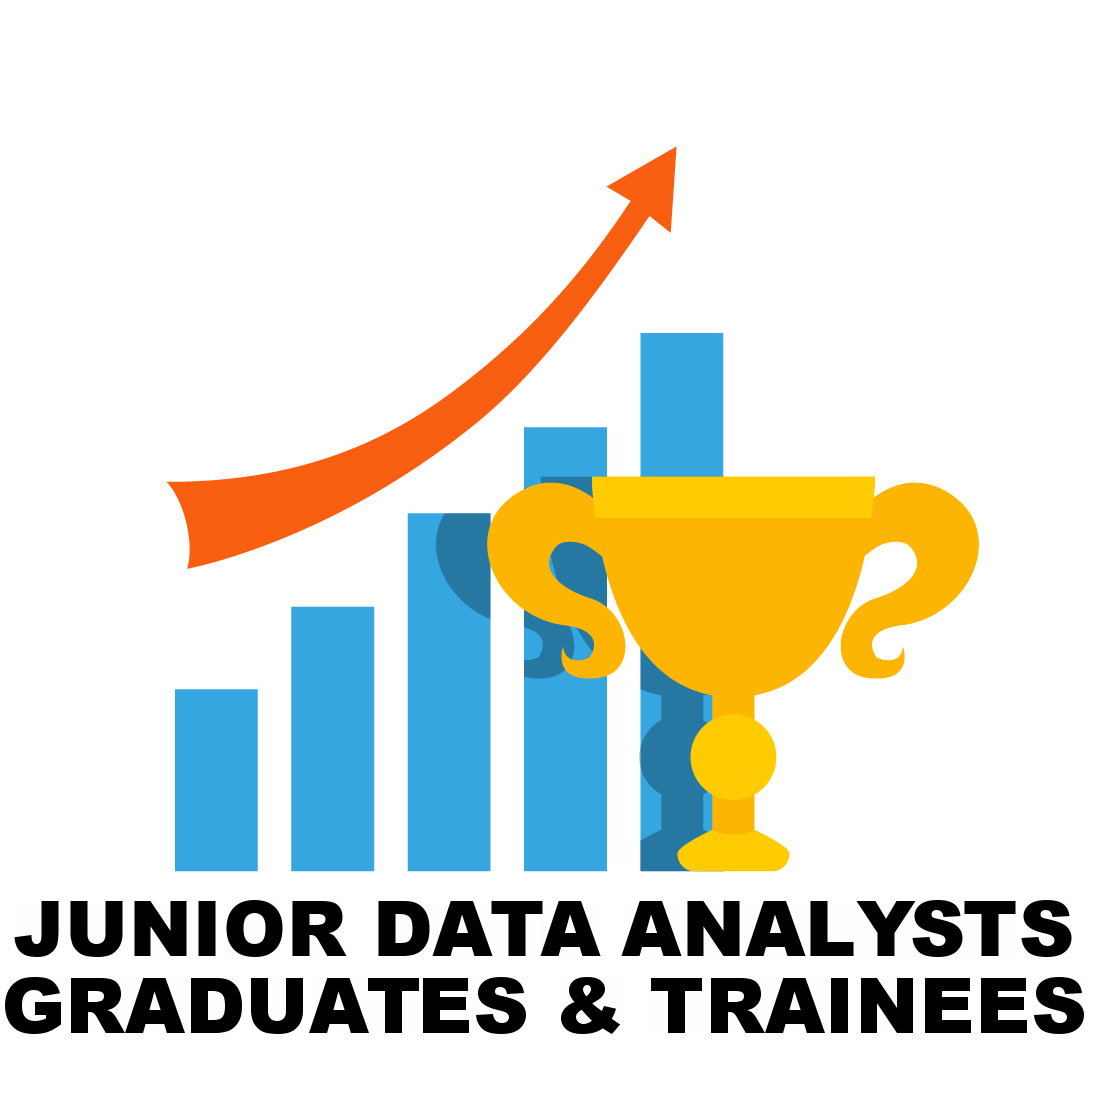 who:  Junior data analyts, graduates & trainees   what:  we support a constant flow of the highest calibre, up & coming ANALYSTS who ARE DRIVEN & MOTIVATED TO BREAK THE MARKET & build a career data    where:  Established environments that offer the appropriate work & are able to support the professional development of its team   when:  Recent grads with 1-2 yrs exp programming in SQL, SAS or R & have a genuine passion for building a career in data analytics       MARKET RATE: $60-80K